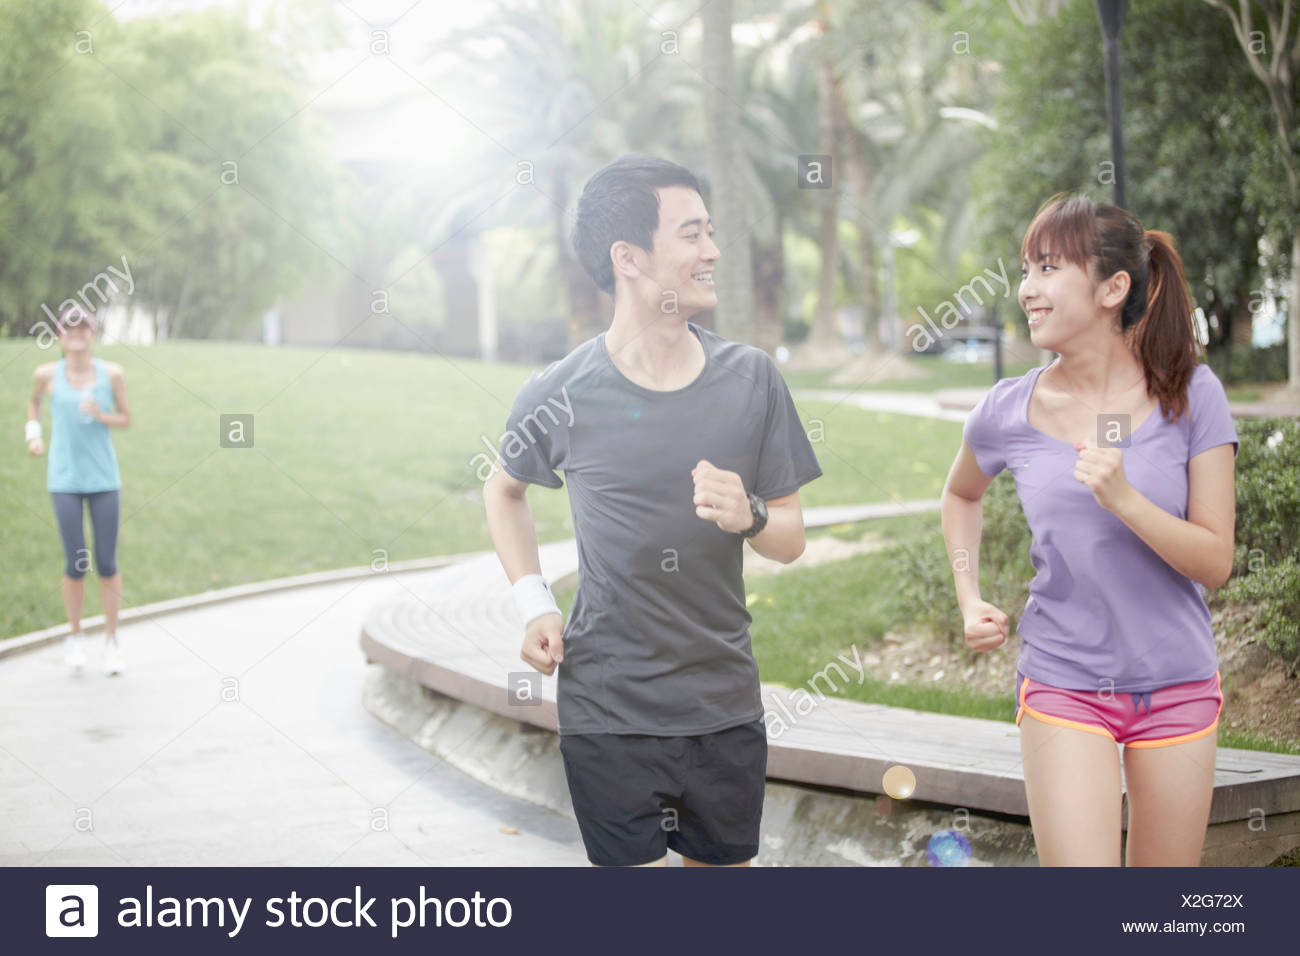 Young people running in park Stock Photo